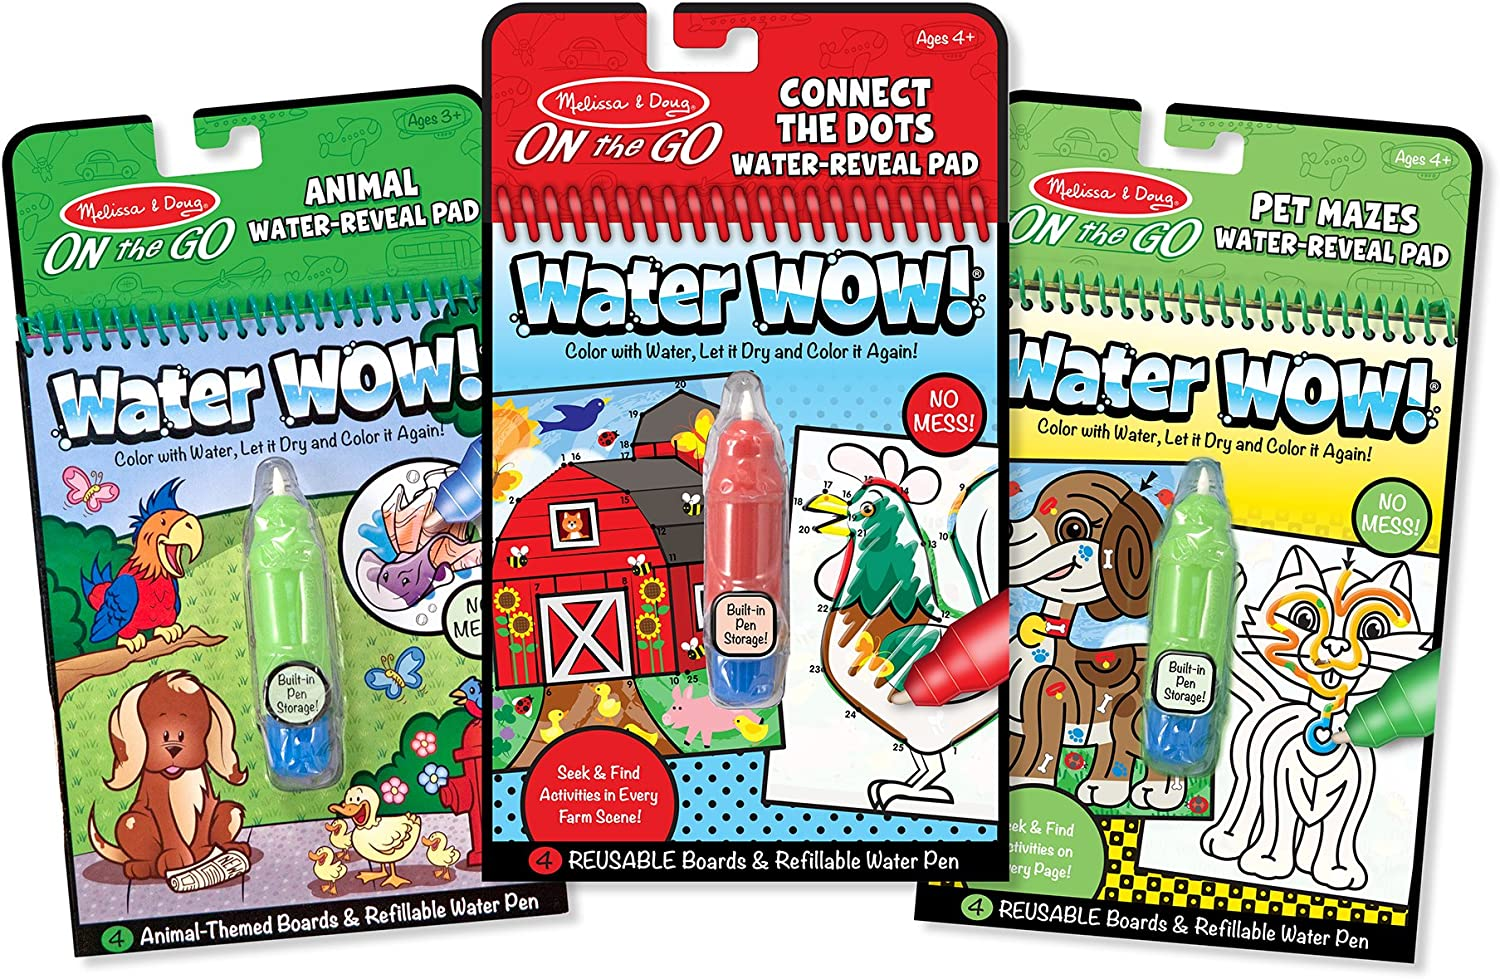 Melissa & Doug On the Go Water Wow  WaterReveal Activity Pads Set  Animal, Connect the Dots, Pet Mazes